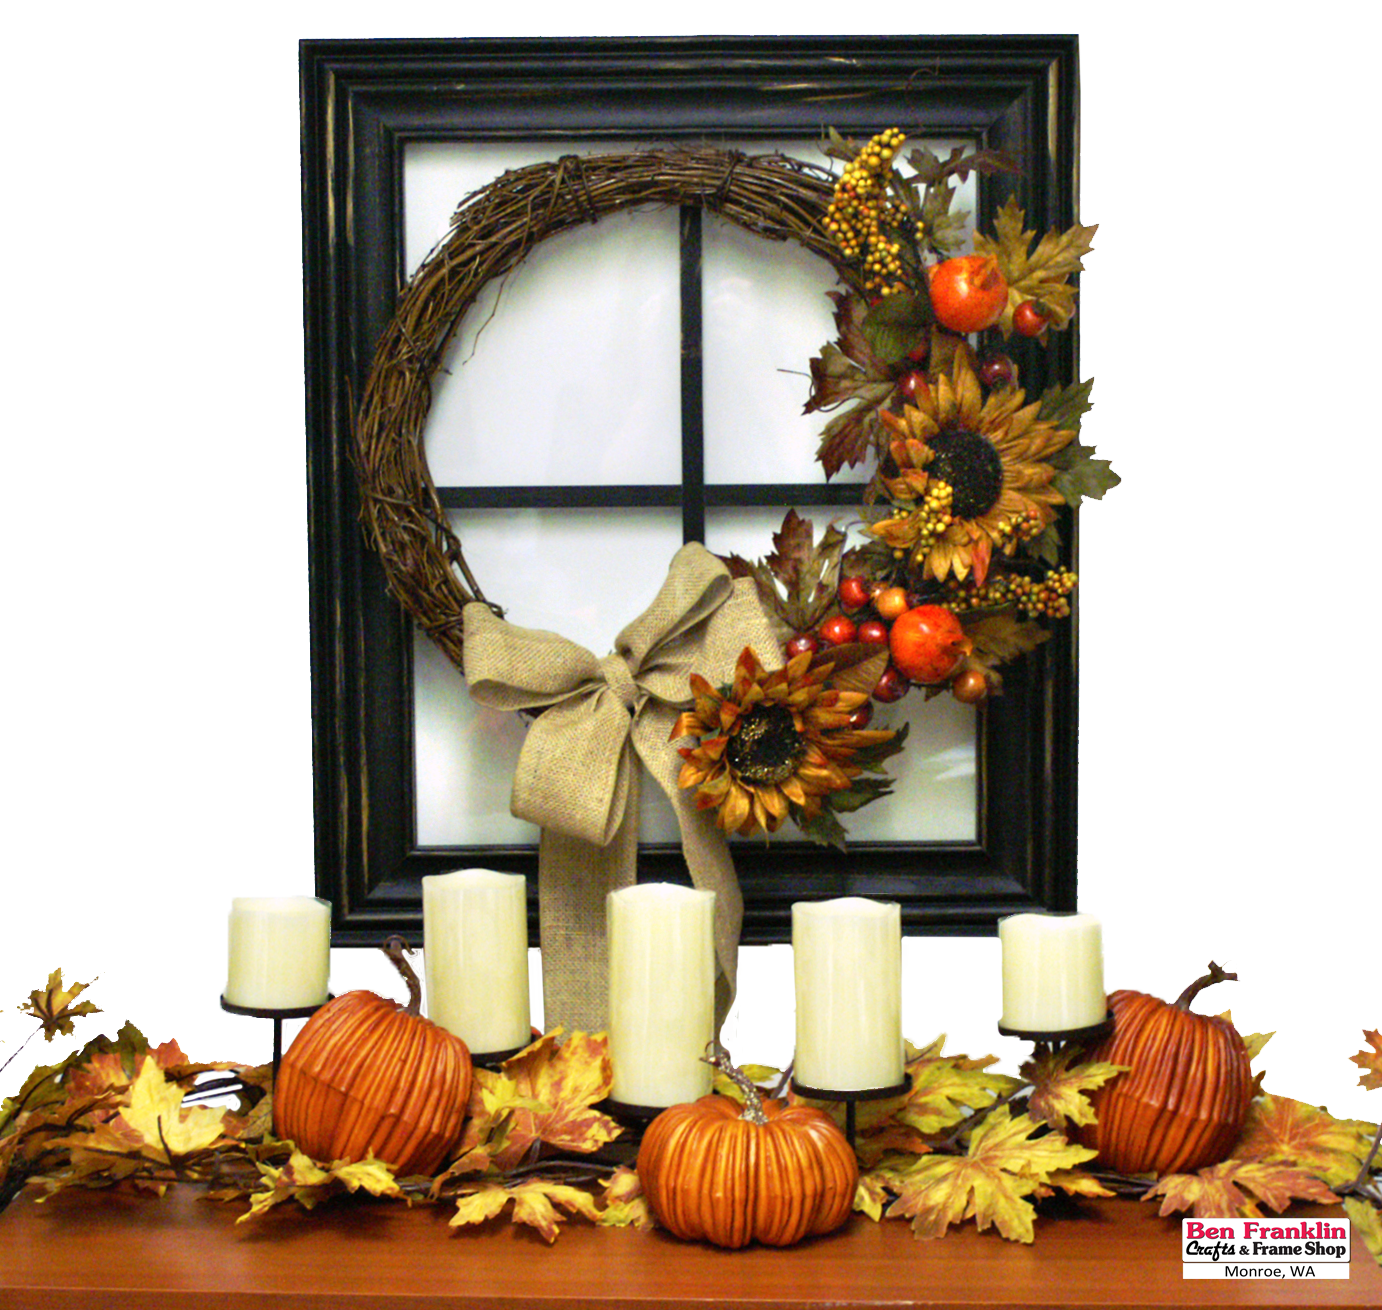 Ben franklin crafts and frame shop monroe wa fall for Autumn window decoration